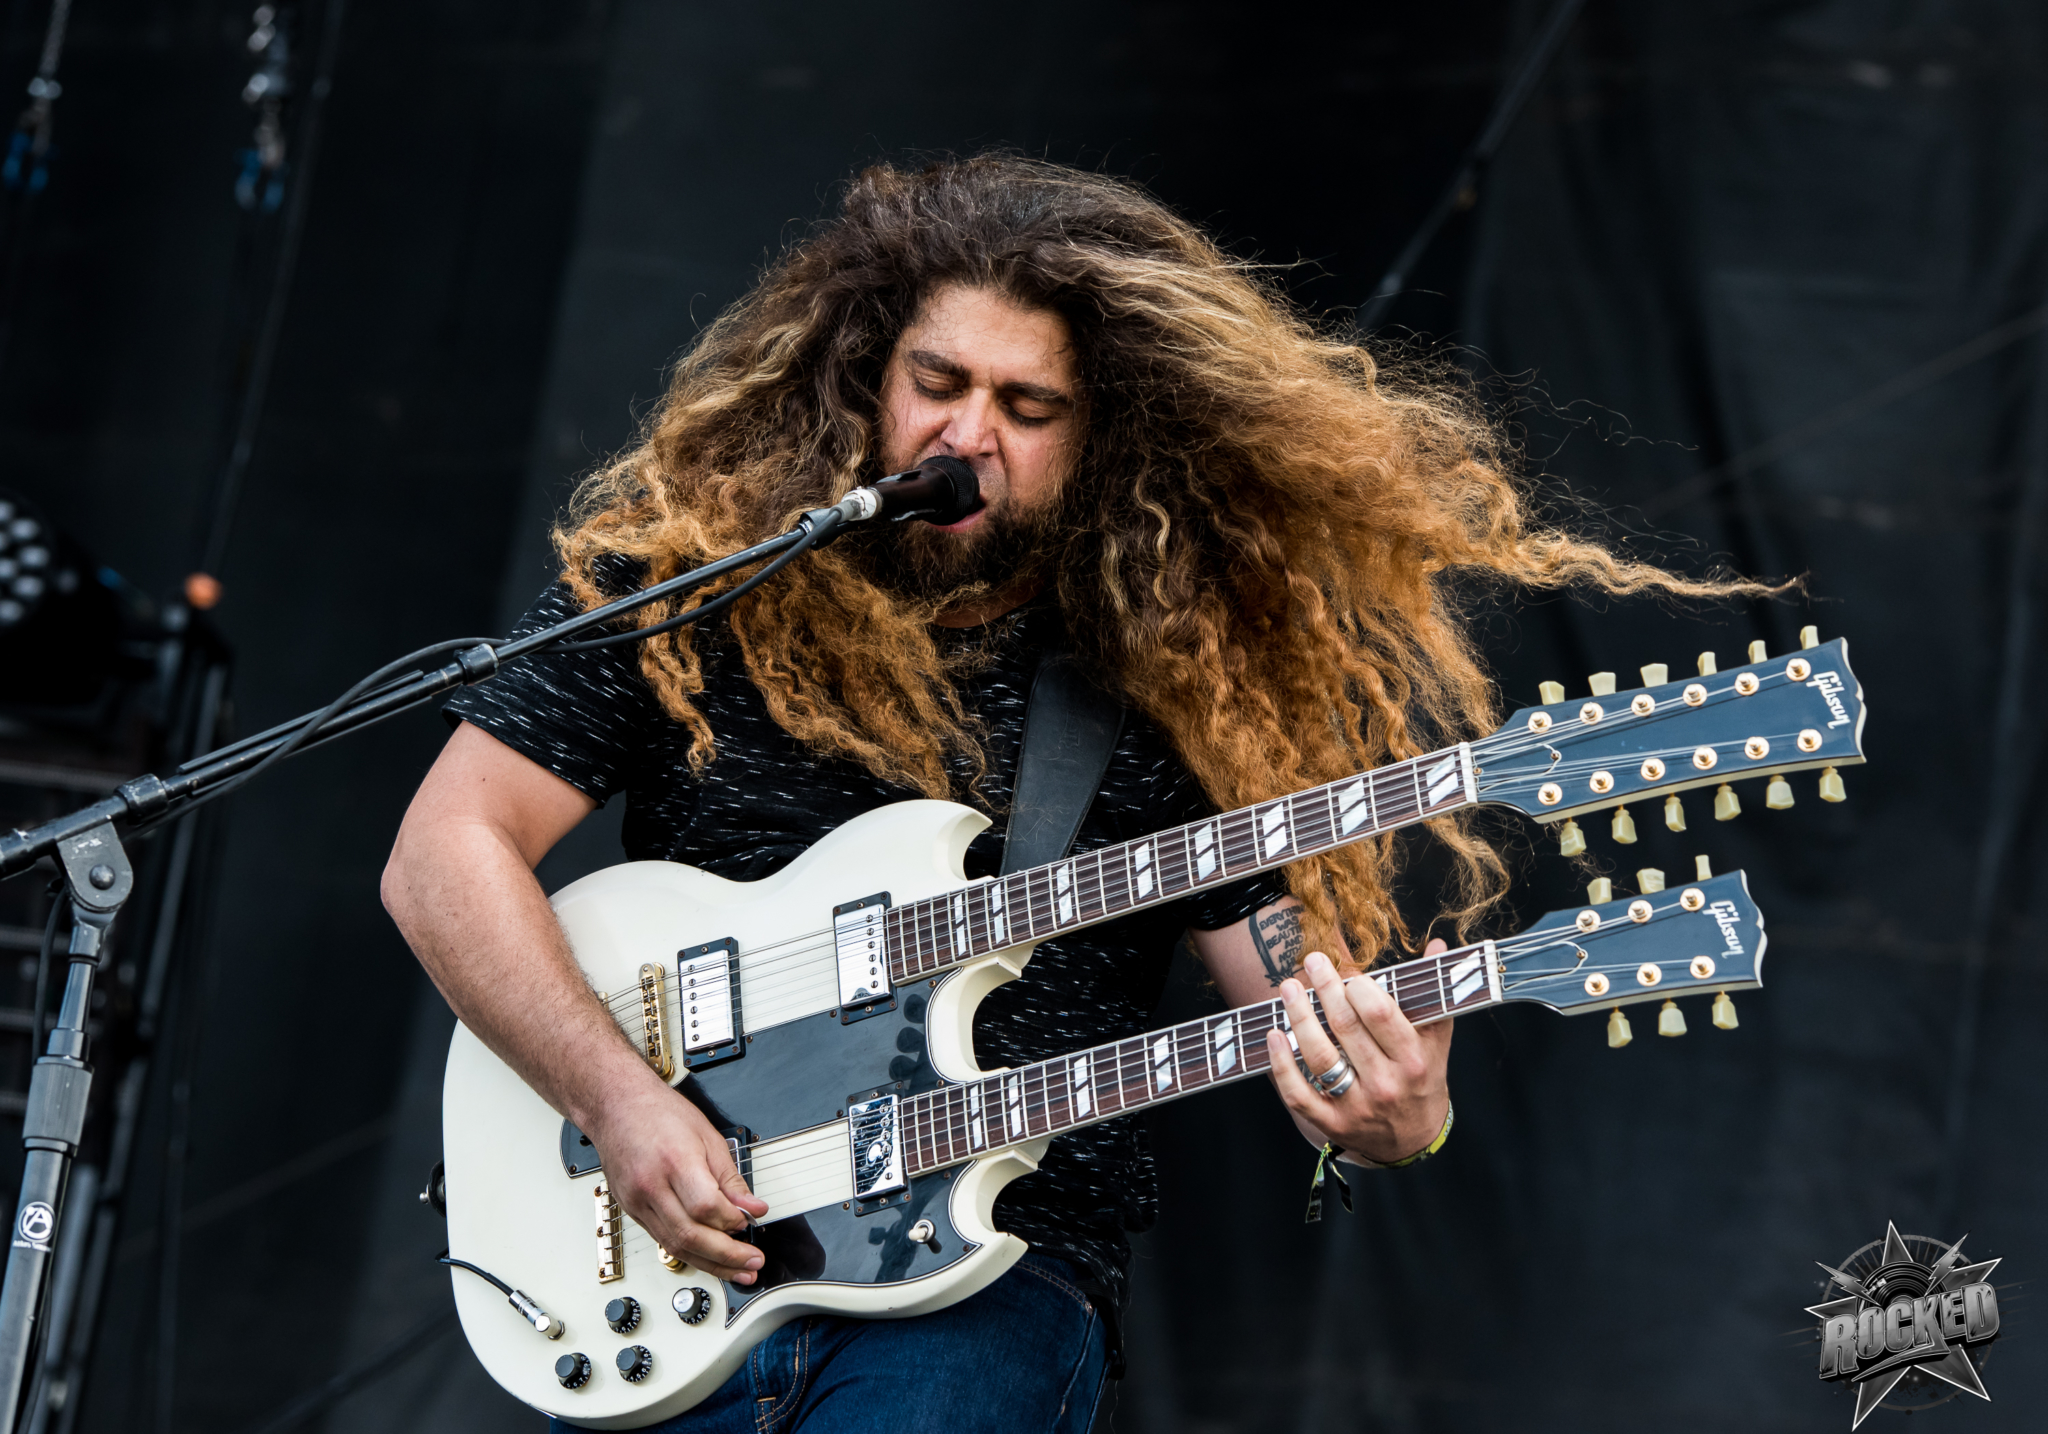 Photos: COHEED & CAMBRIA at Welcome To Rockville in